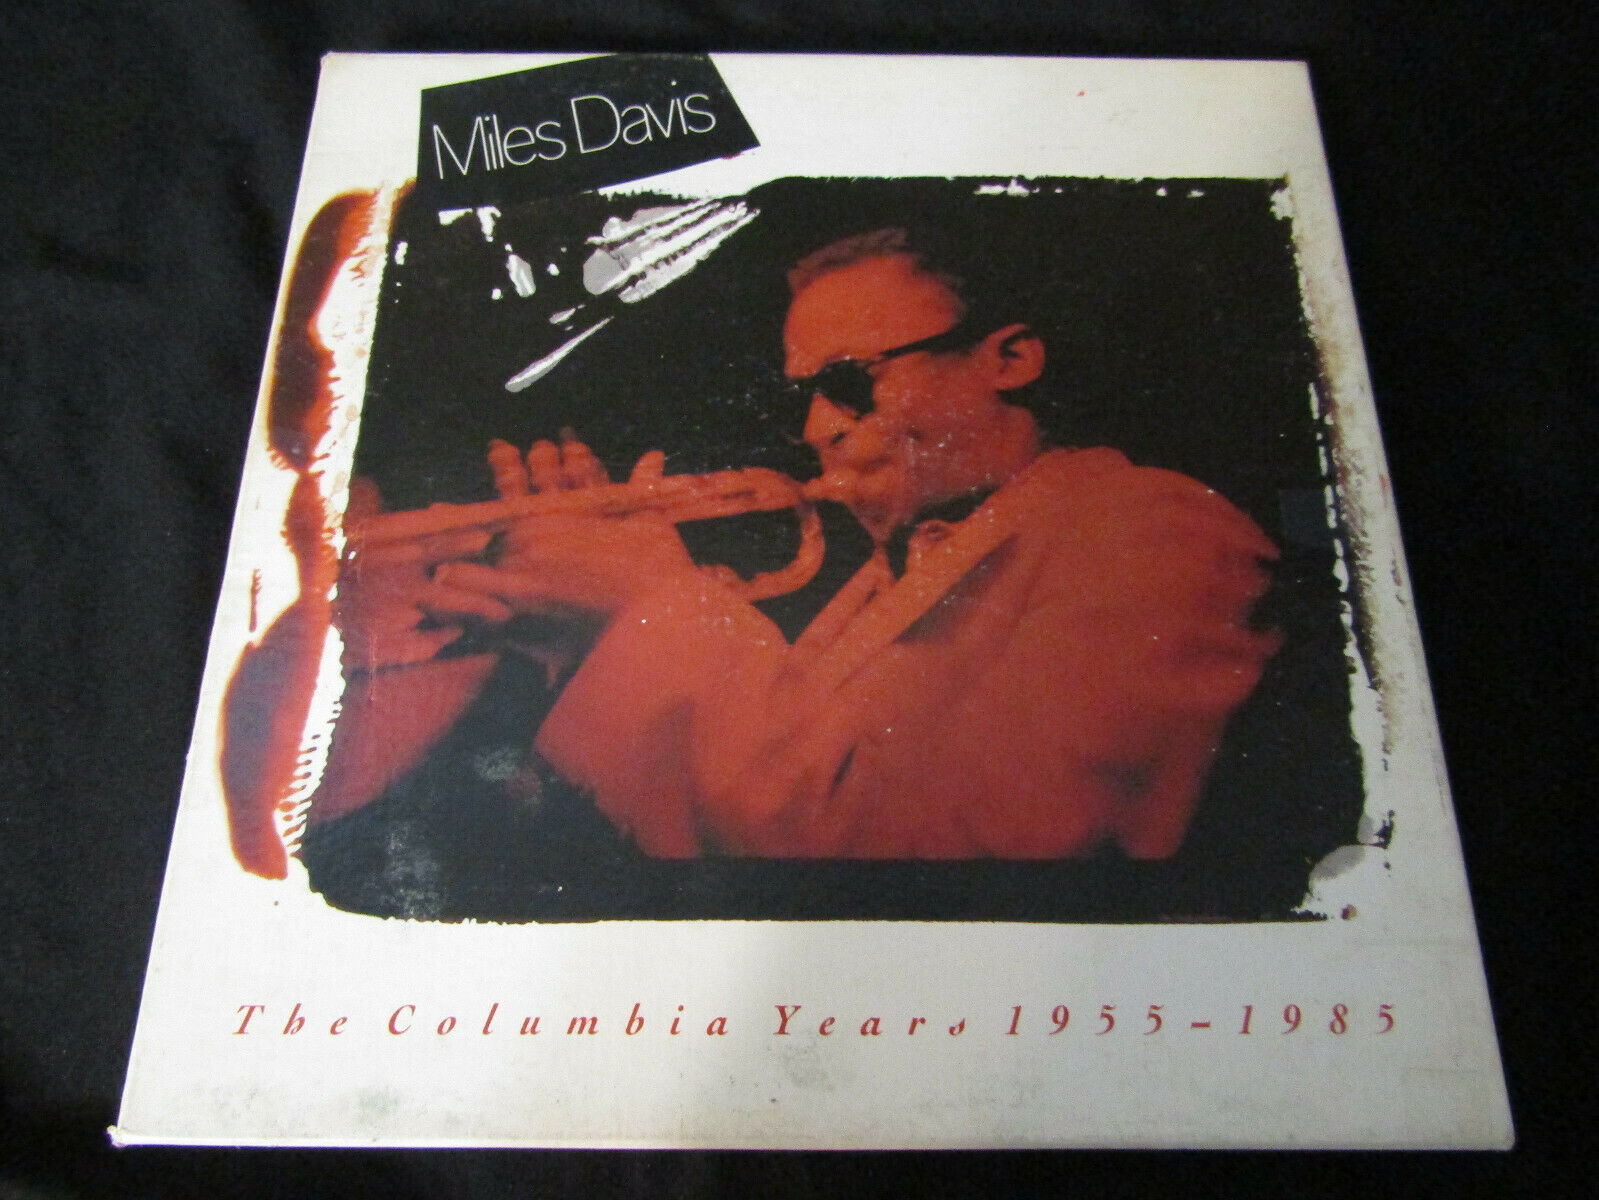 Primary image for Miles Davis The Columbia Years 1955 - 1985 C5X 45000 Stereo Vinyl Record LP Box